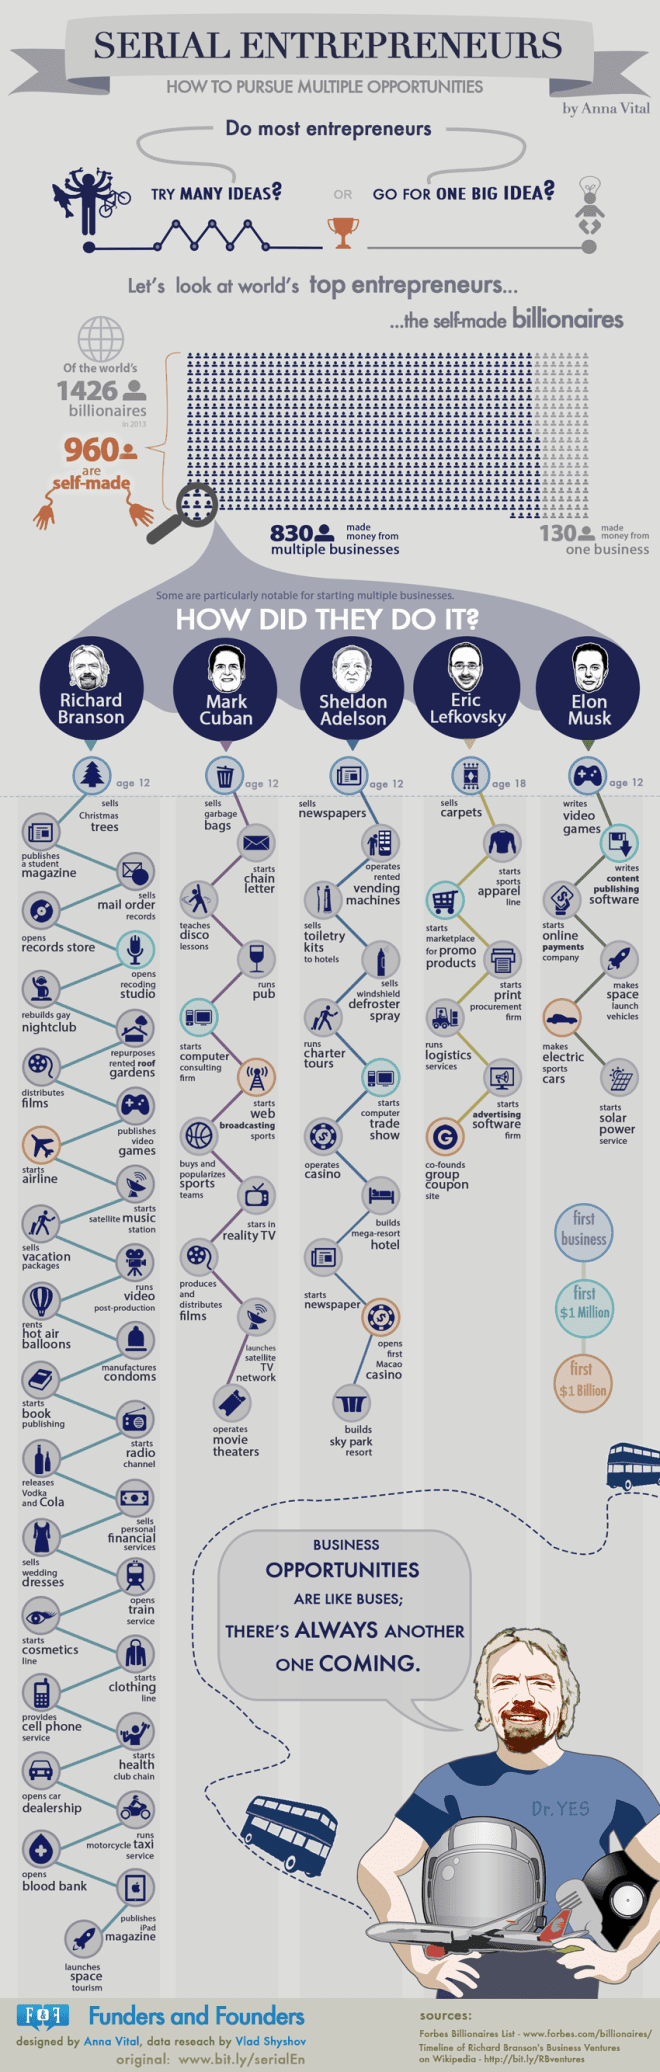 serial entrepreneurs how to pursue multiple opportunities infographic